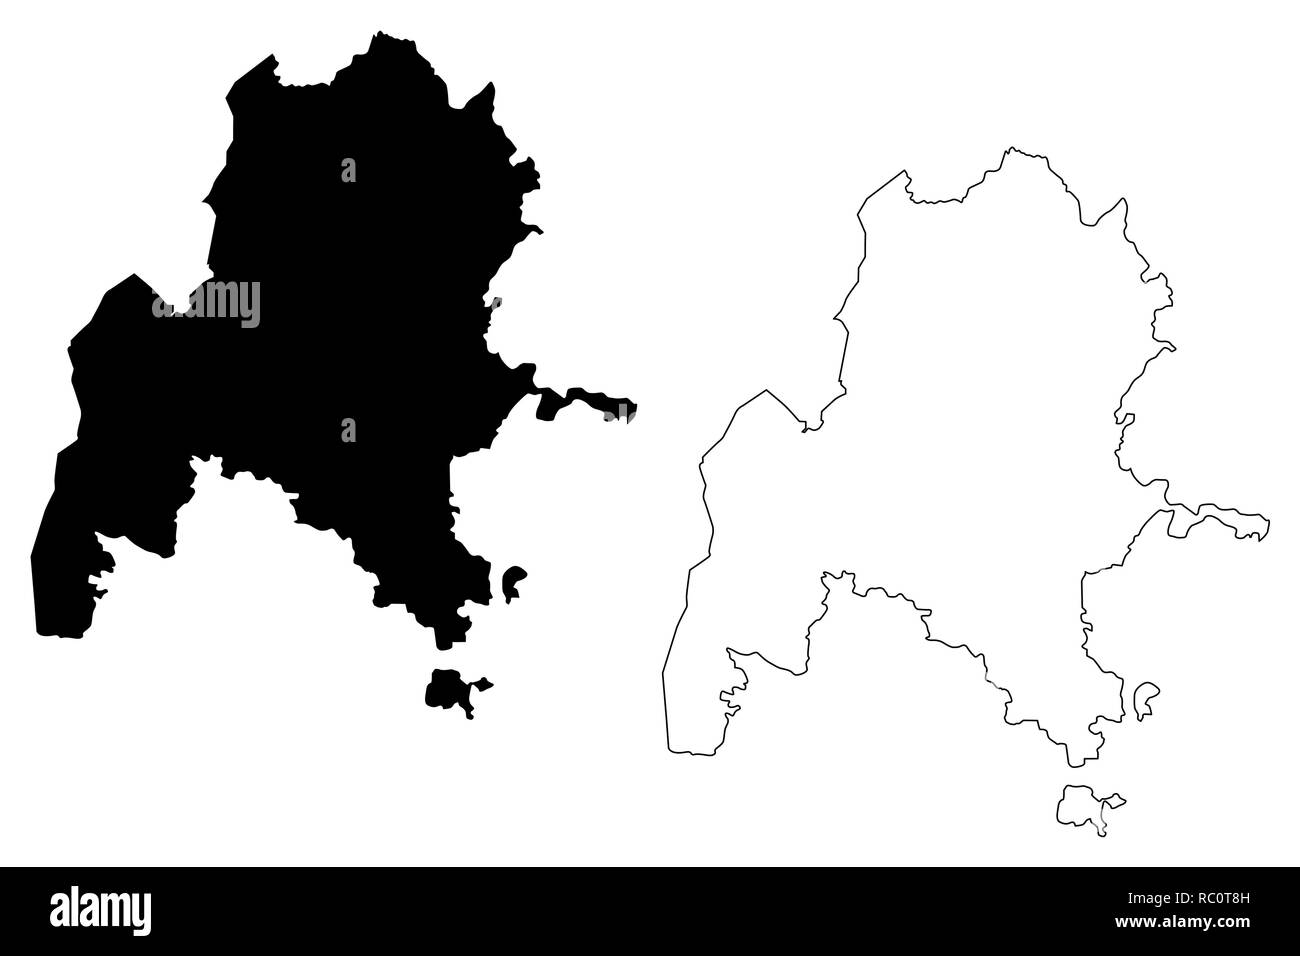 World Map Ethiopia Cut Out Stock Images & Pictures - Alamy